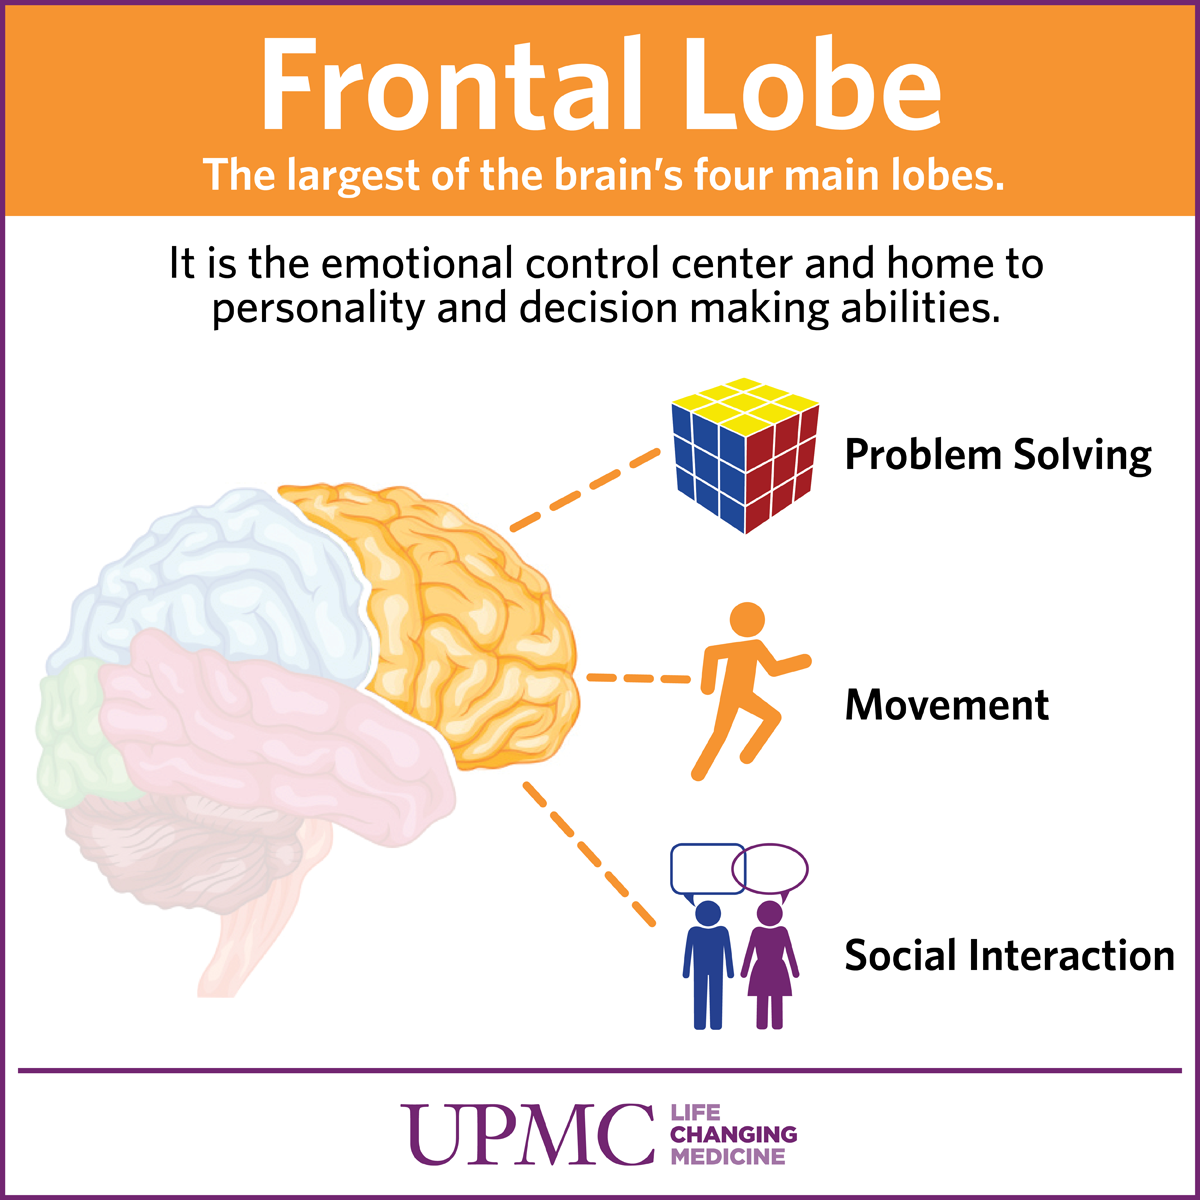 Get To Know Your Brain: The Frontal Lobe | UPMC HealthBeat